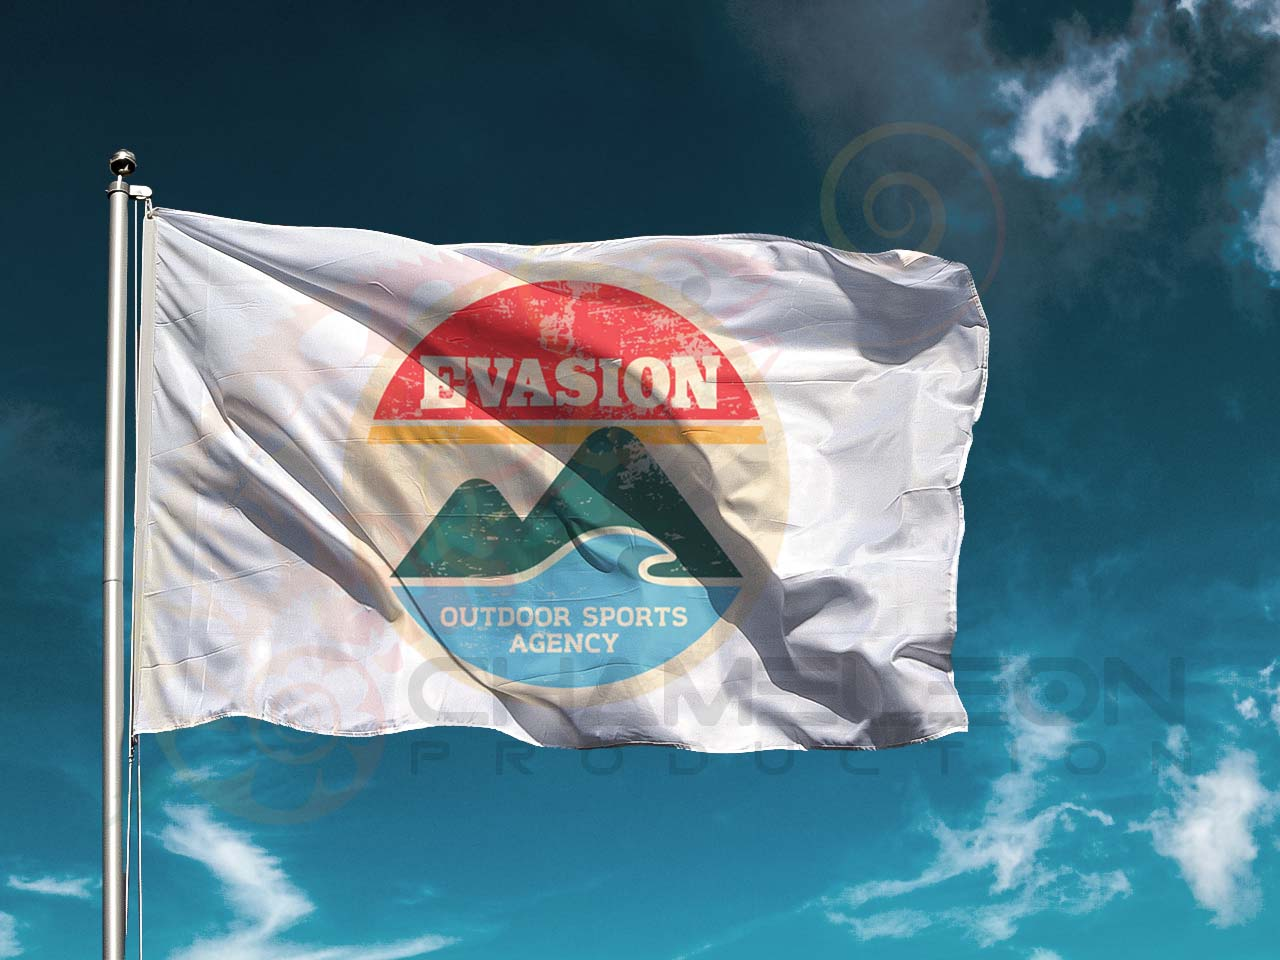 evasion koh tao 250 cm flag. Chameleon production make fabric printing